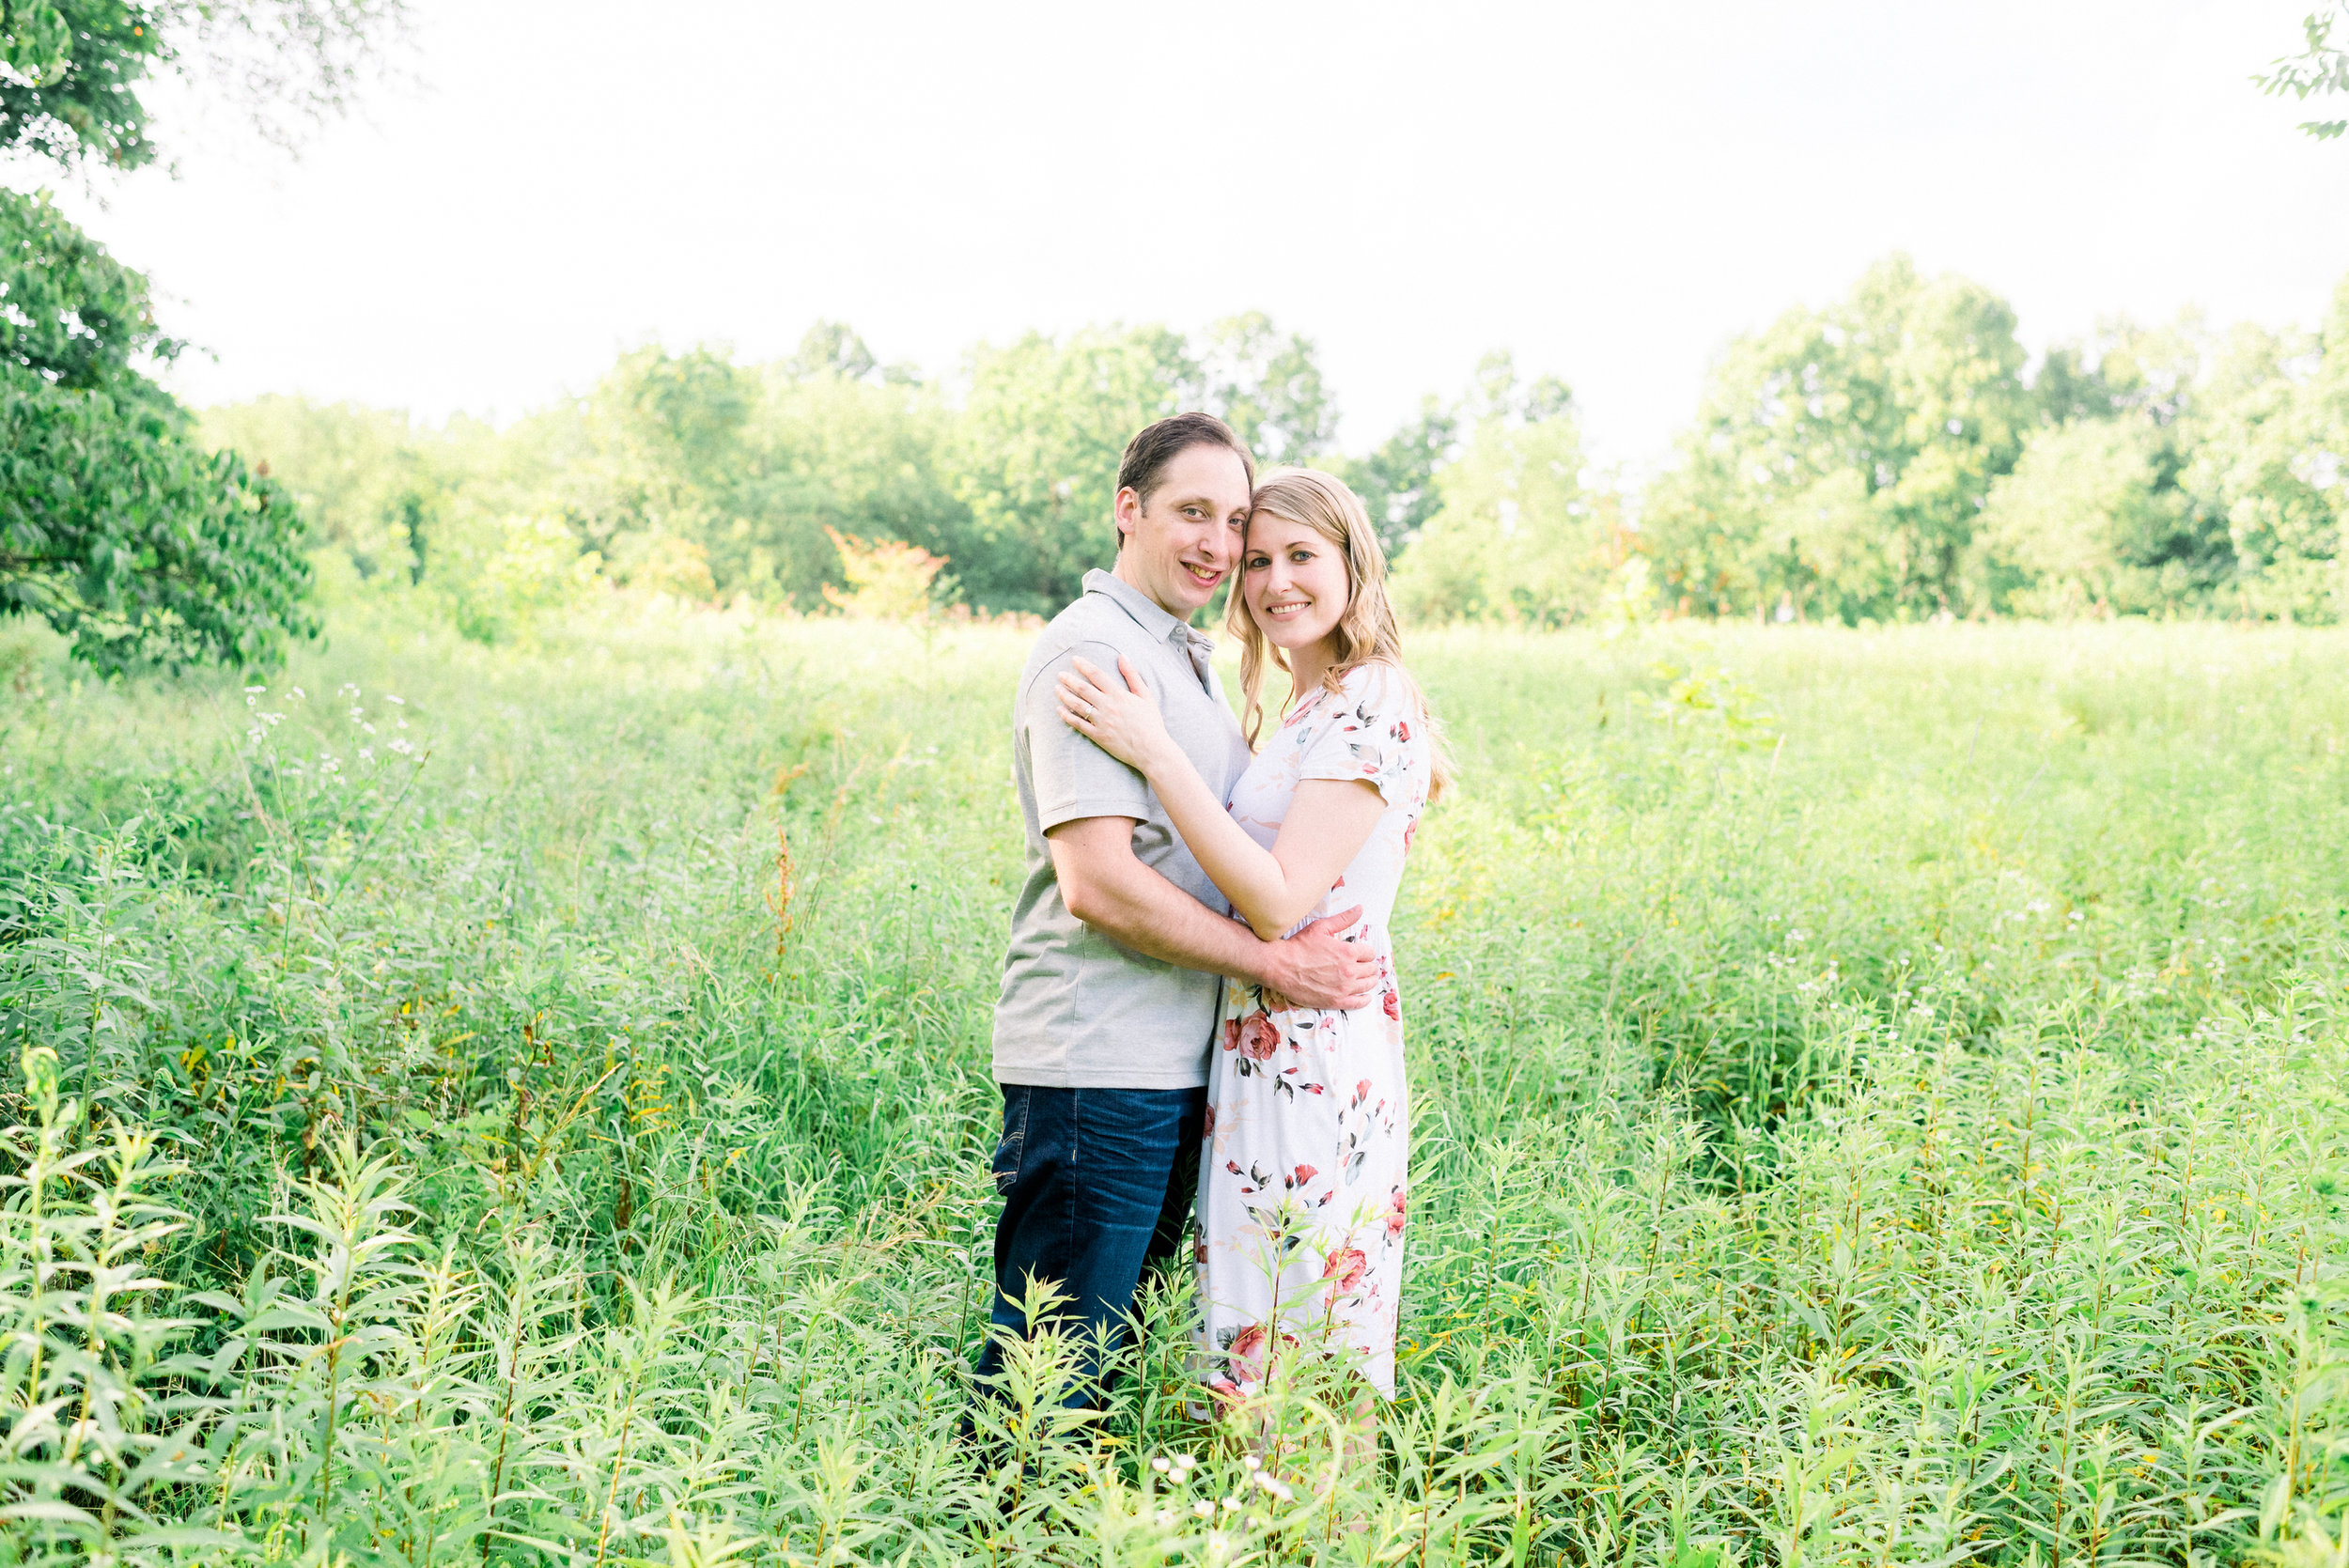 Pittsburgh-botanic-garden-engagement-session-ashley-reed-photography1.jpg